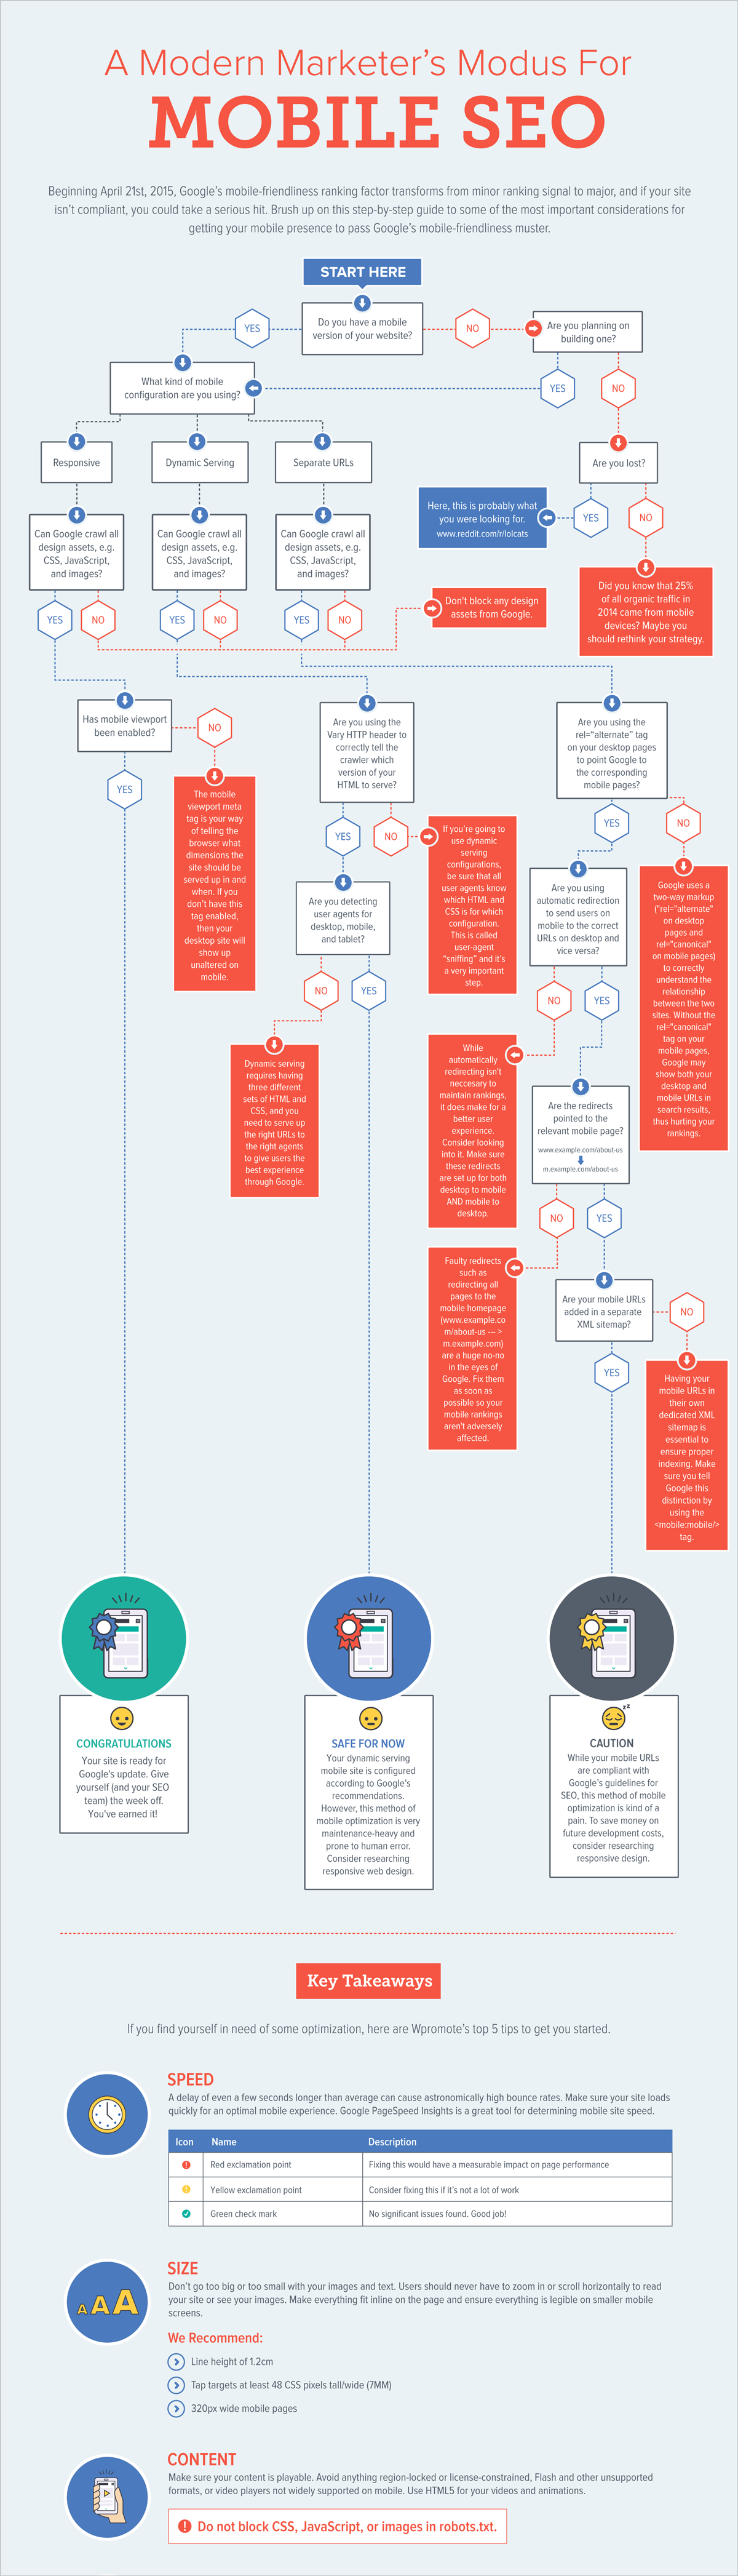 21 Creative Flowchart Examples For Making Important Life Decisions Process Flow Diagram Presentation 5 Expand Beyond The Reasonably